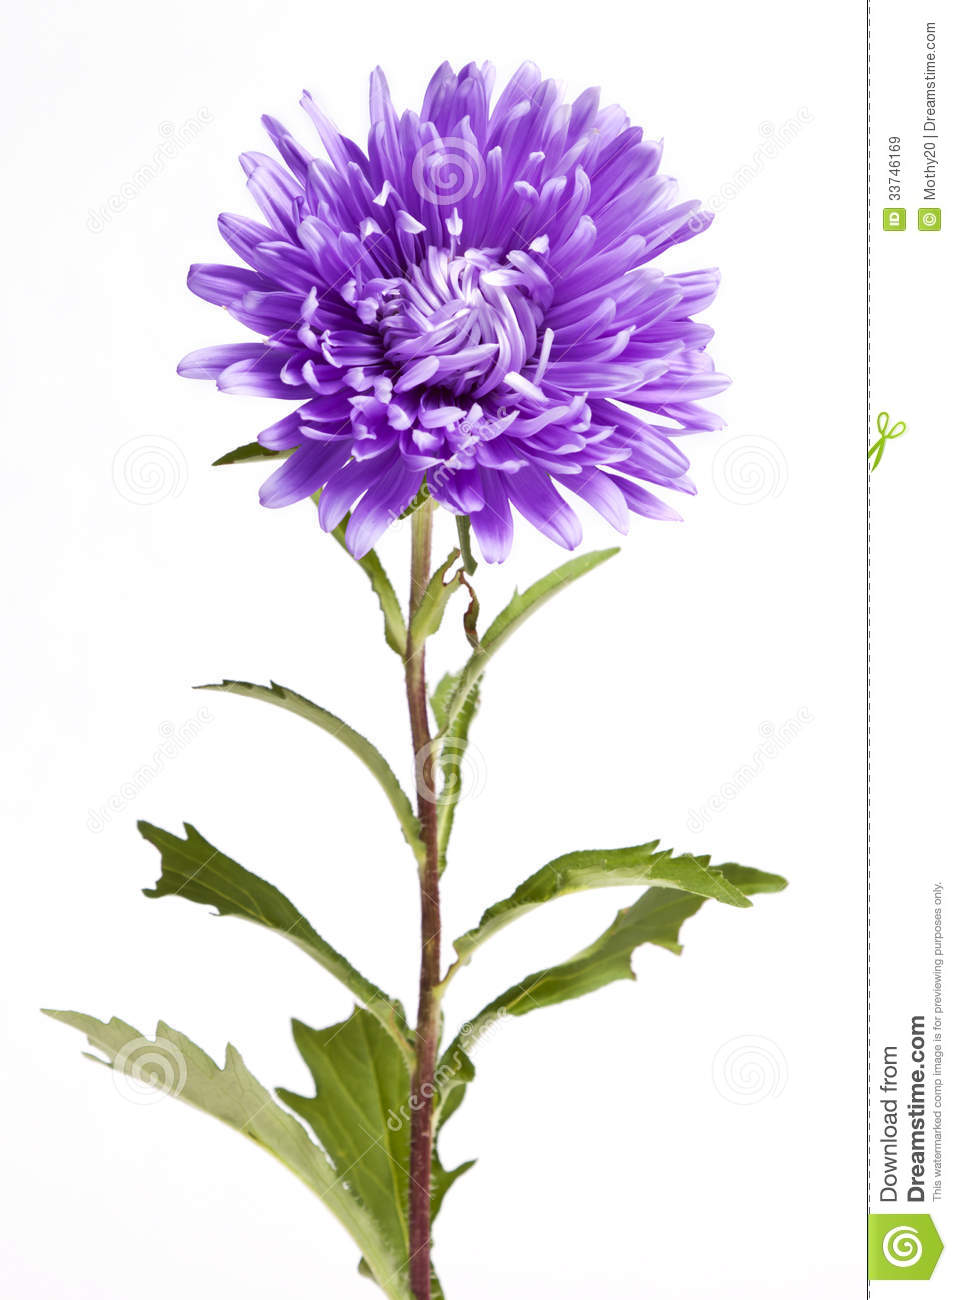 purple aster flower royalty free stock images  image, Beautiful flower